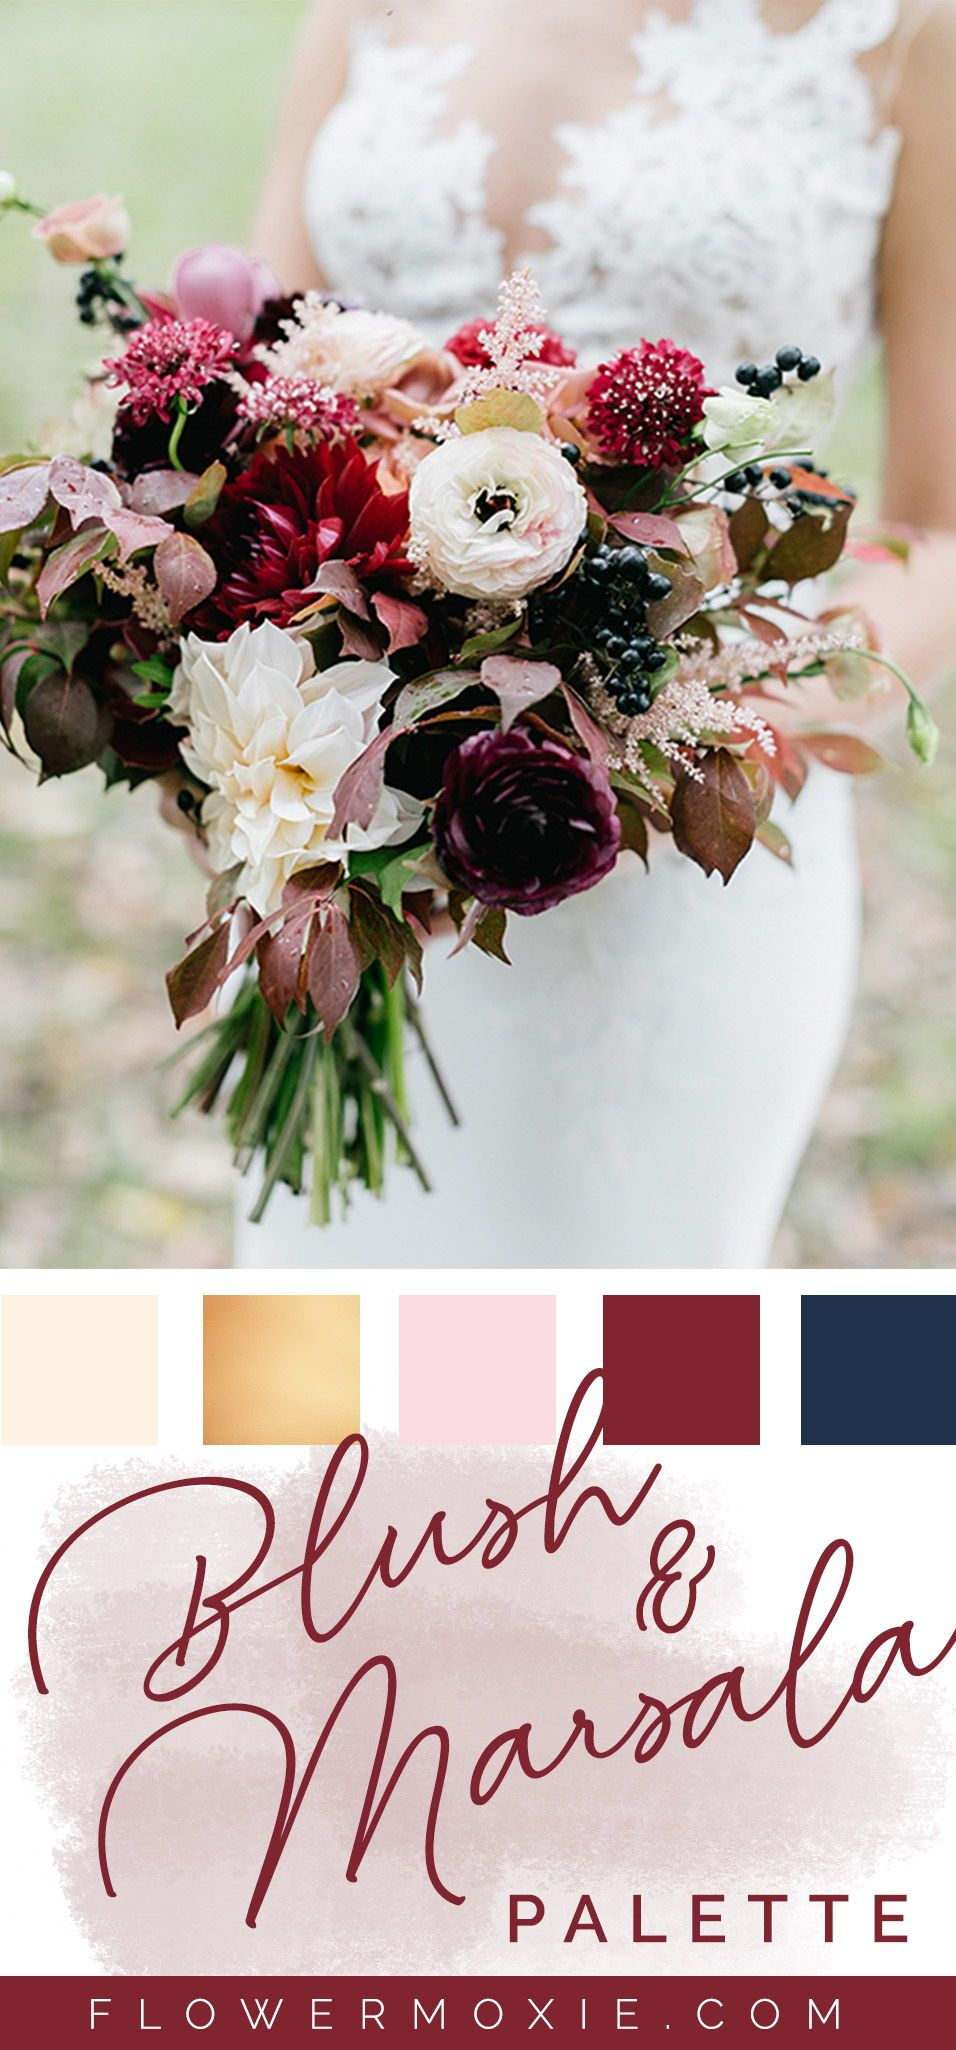 Get Inspired By Our Wedding Flower Packages Mix Match Flowers To Achieve The Look You Want Or Wholesale Flowers Wedding Diy Wedding Bouquet Flower Packaging